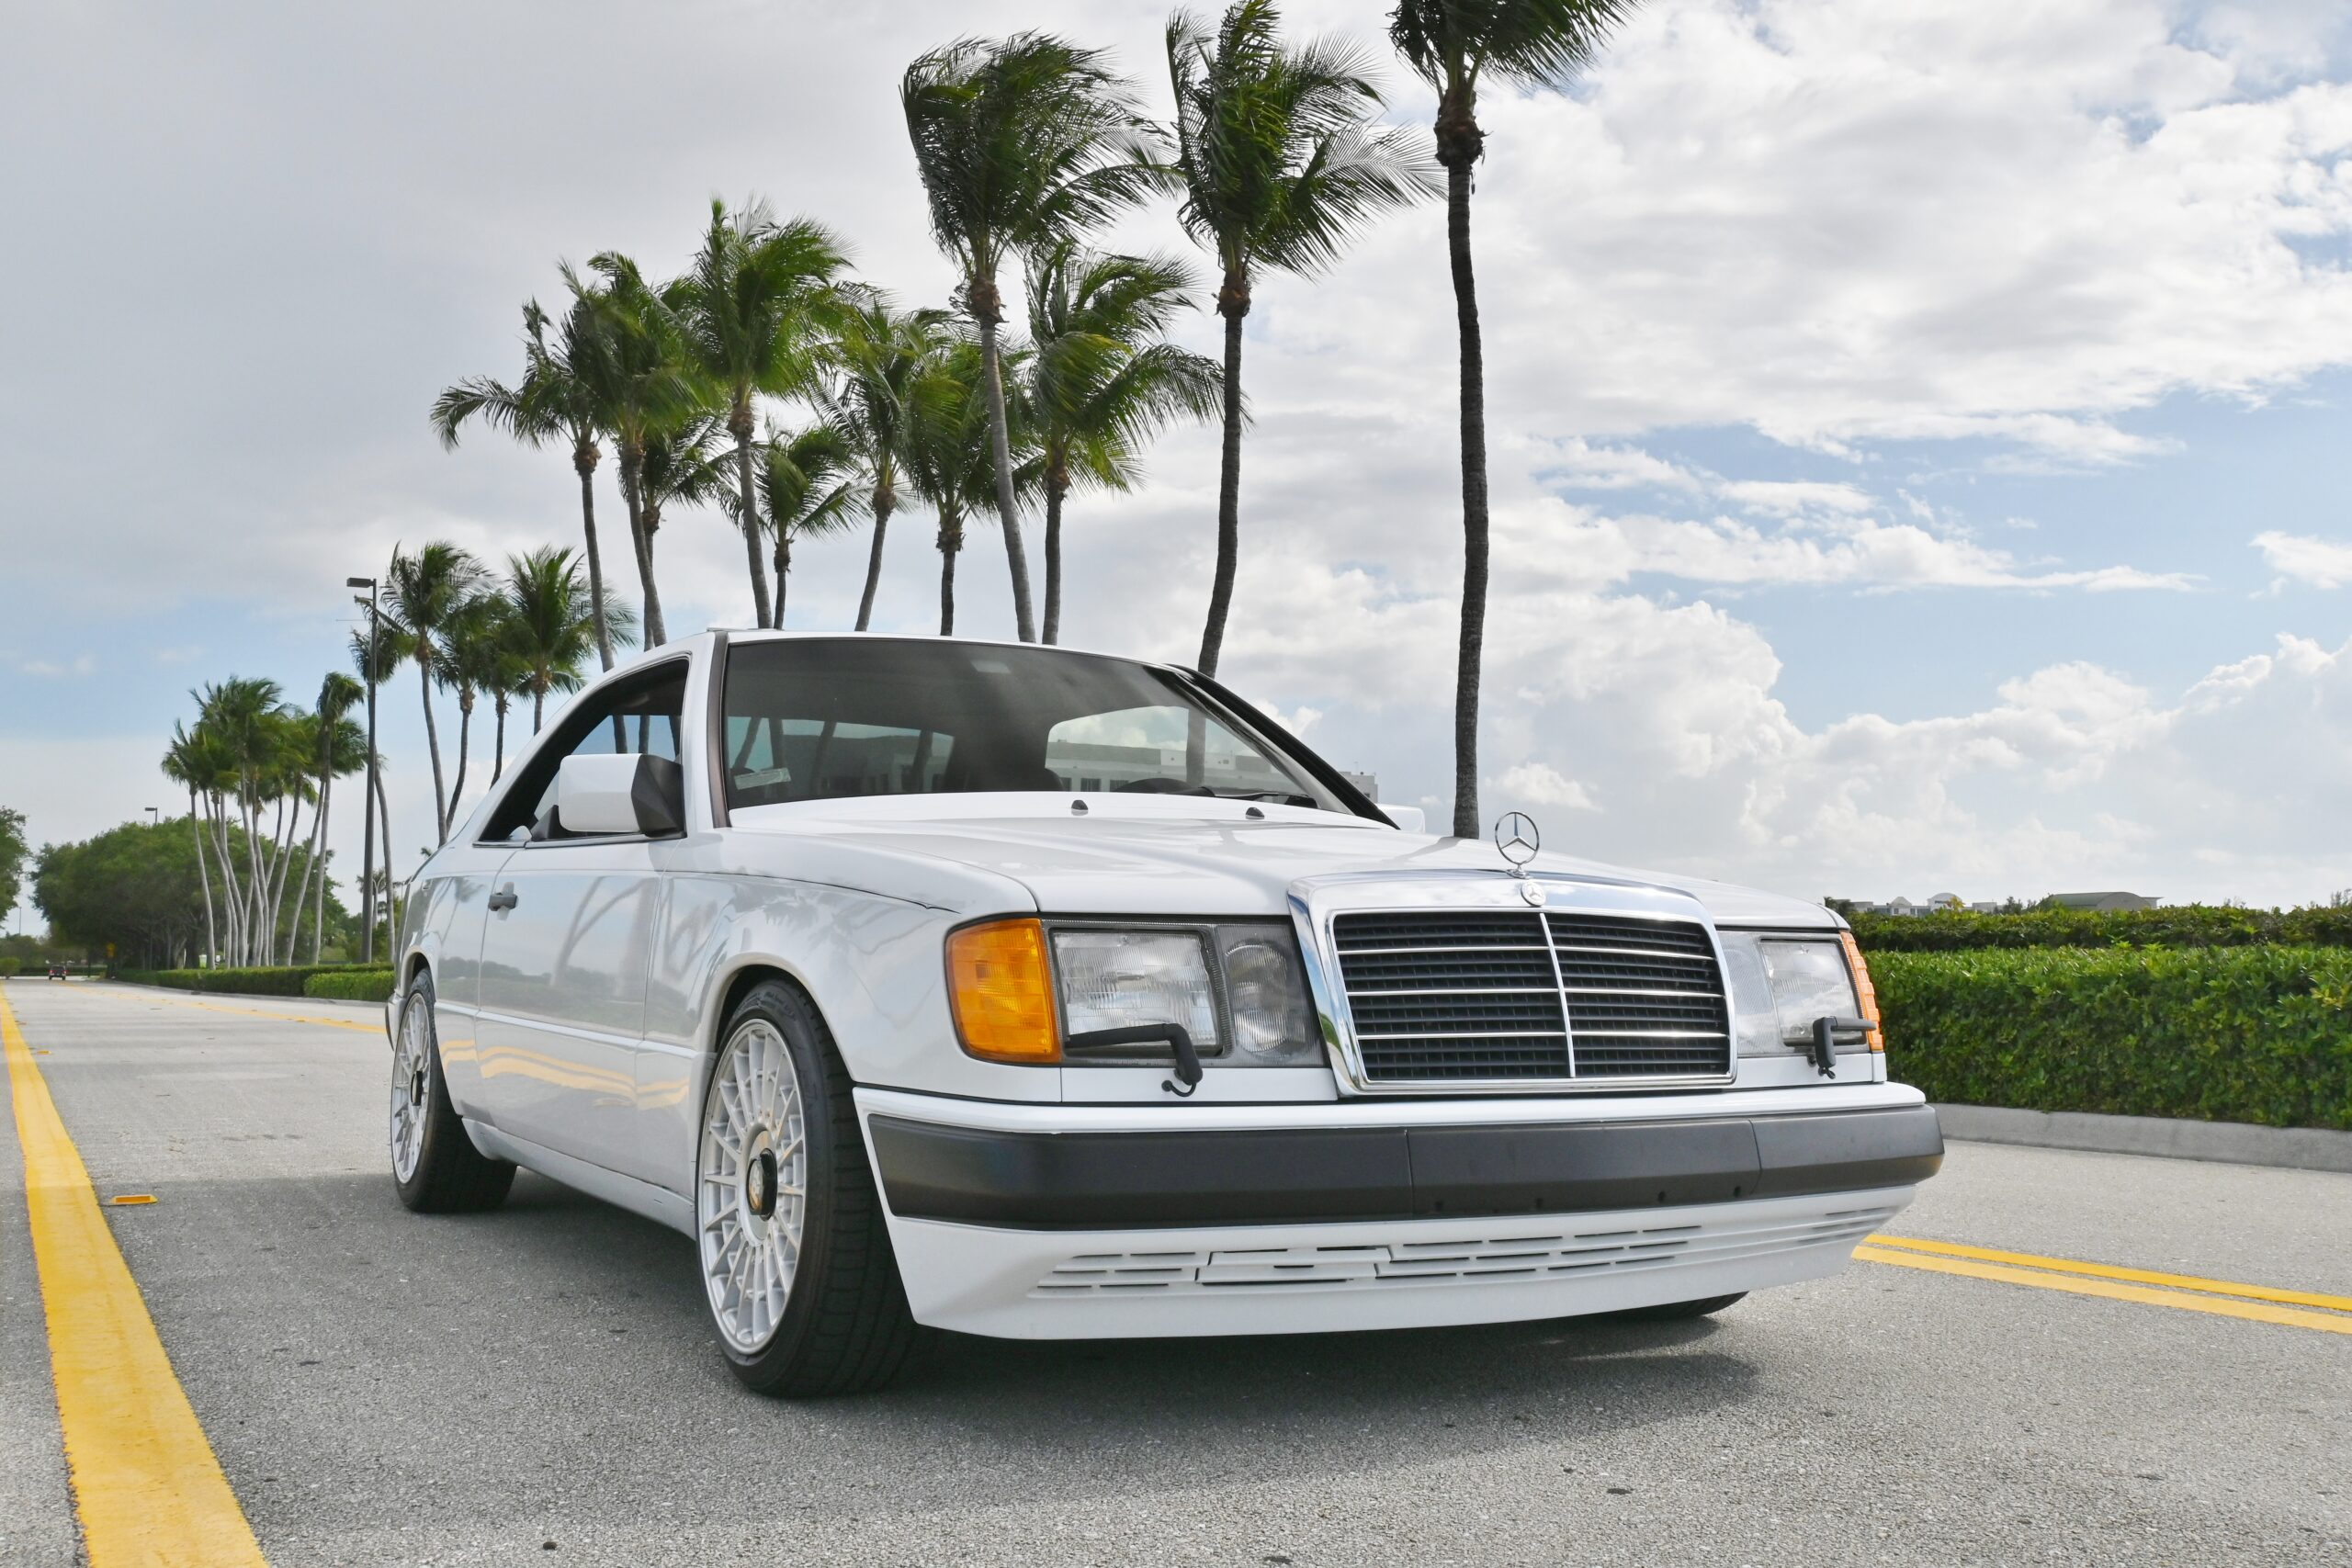 1989 Mercedes-Benz W124 300CE Cleanest 300CE in existence! $40,000 Restoration With Reciepts – Only 63k Miles